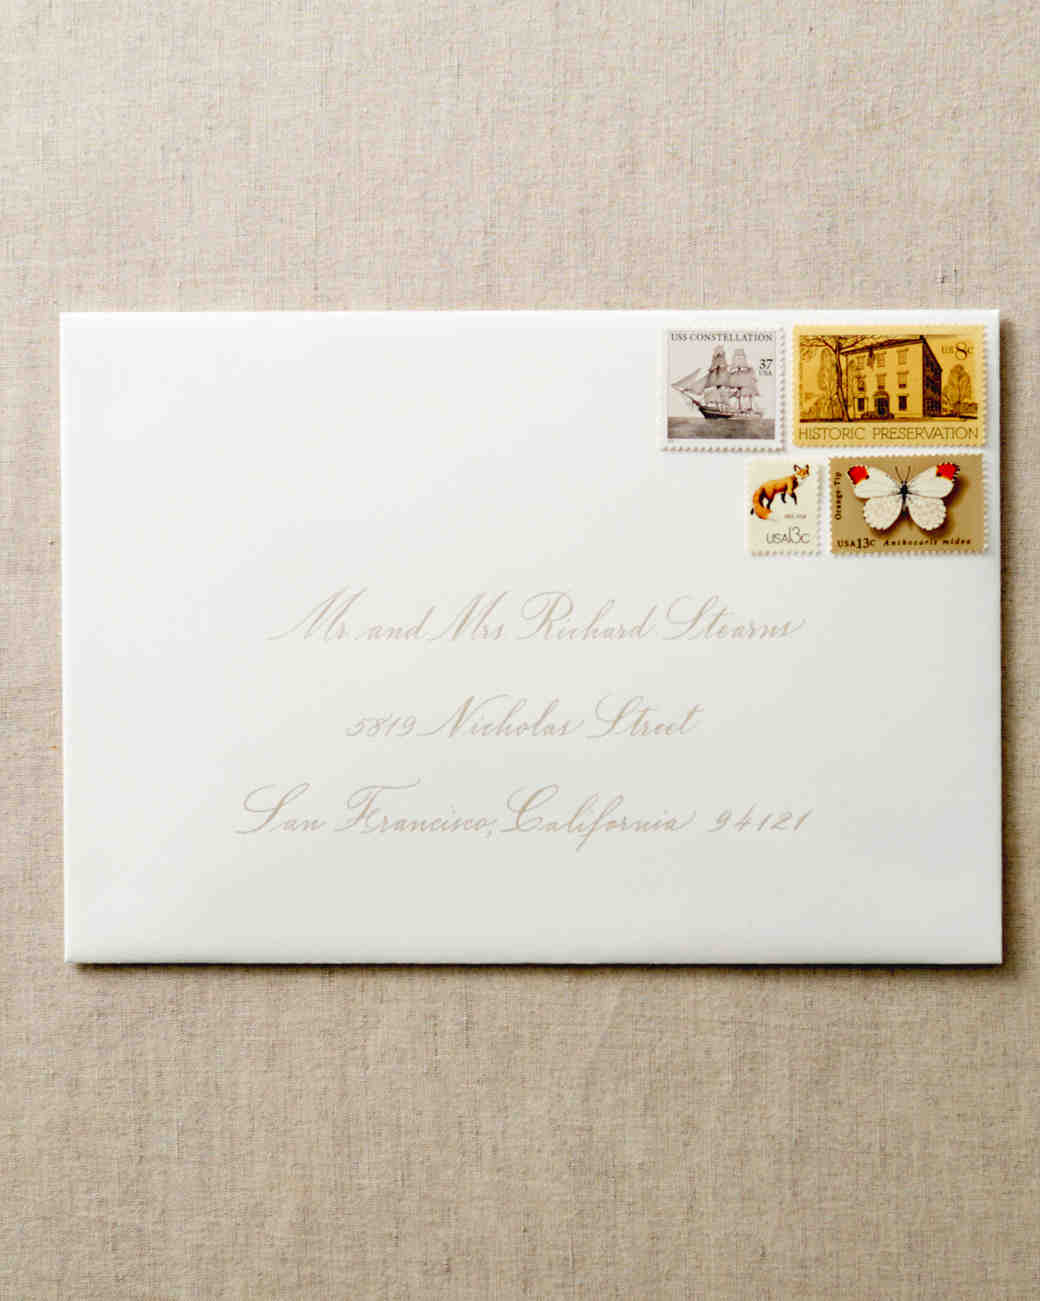 How to address guests on wedding invitation envelopes for Wedding invitations return address wording